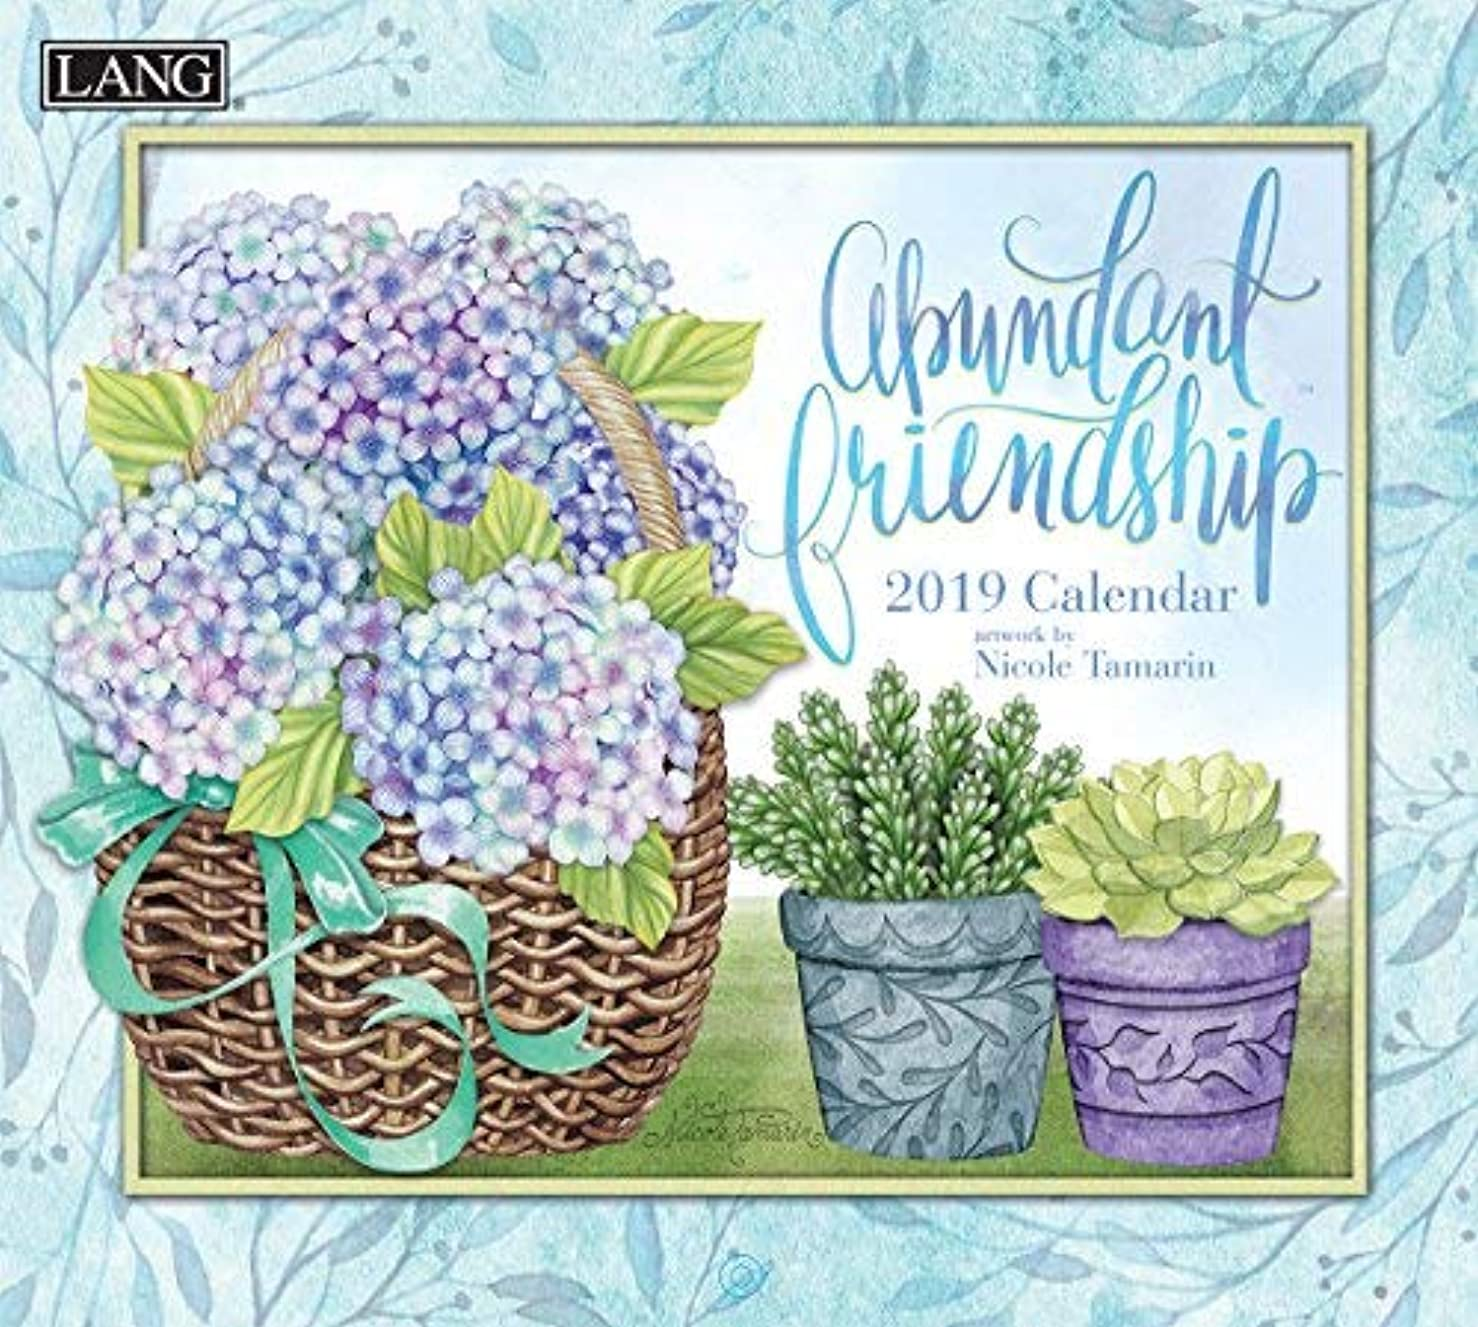 汚染うるさい消防士Lang Abundant Friendship 2019 Wall Calendar Office Wall Calendar (19991002005) [並行輸入品]